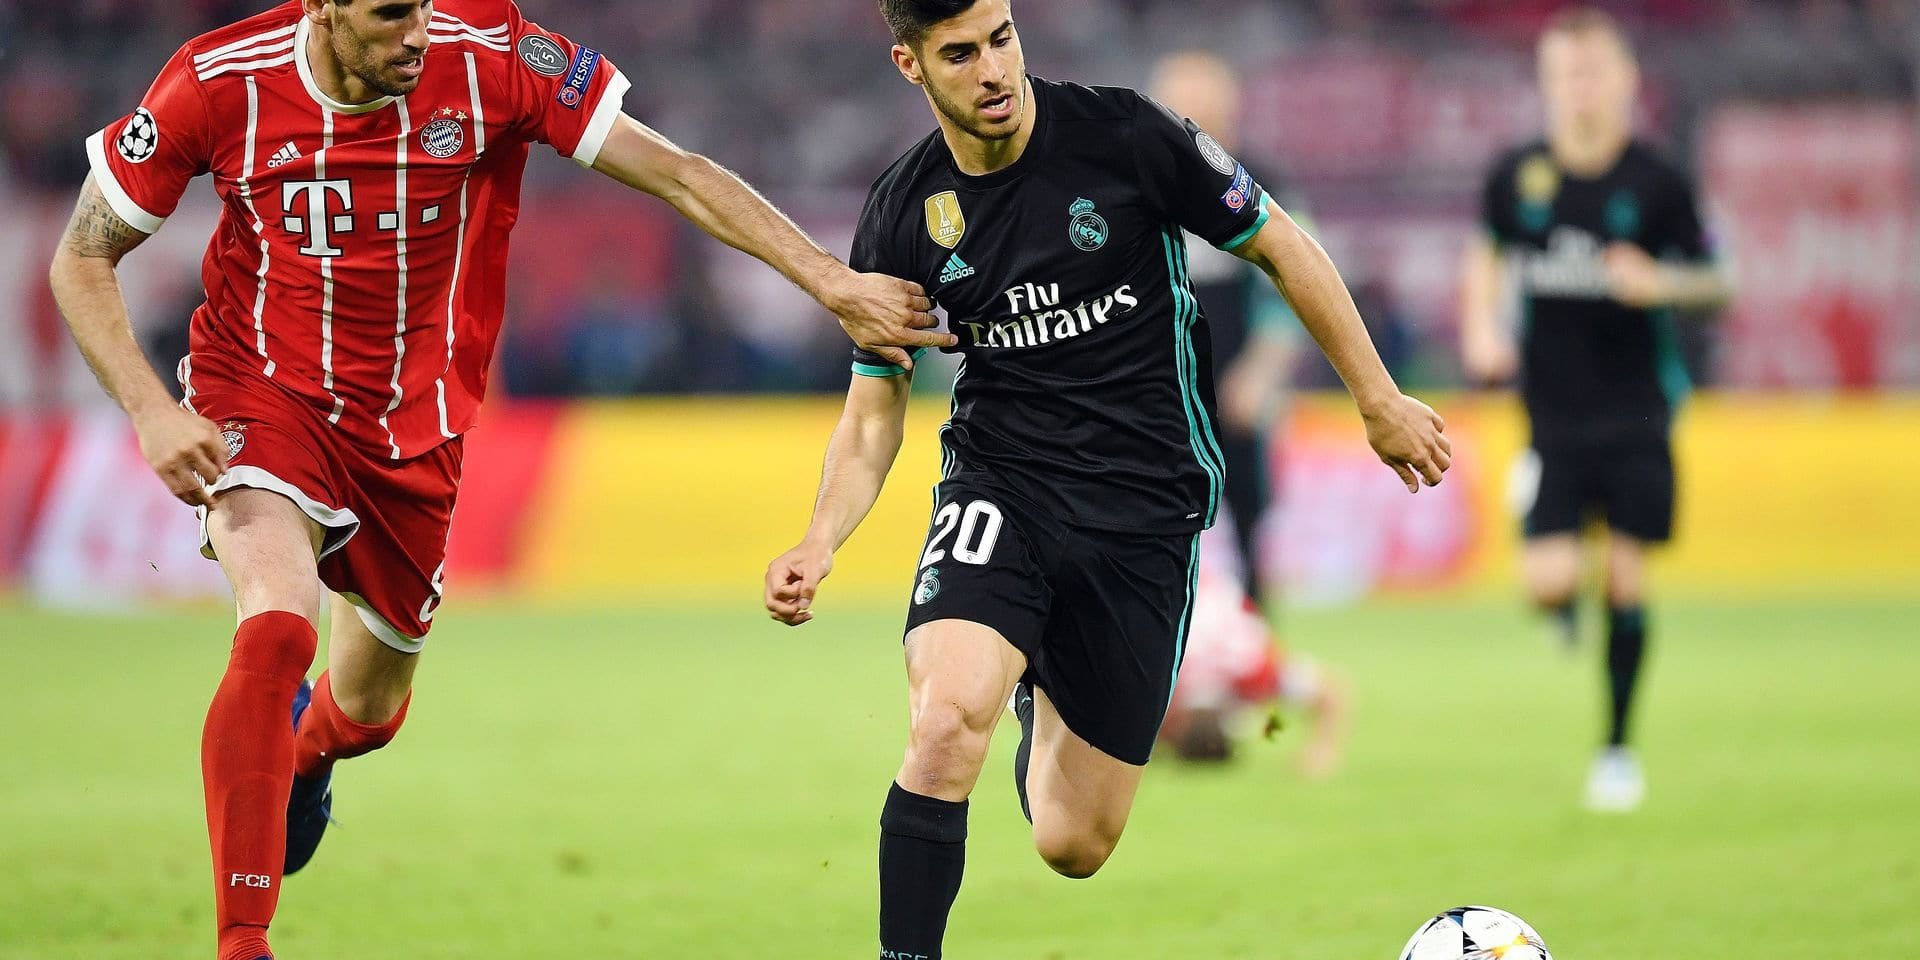 Real Madrid's Spanish midfielder Marco Asensio (R) challenges Bayern Munich's Spanish midfielder Javier Martinez during the UEFA Champions League semi-final first-leg football match FC Bayern Munich v Real Madrid CF in Munich in southern Germany on April 25, 2018. / AFP PHOTO / Christof STACHE